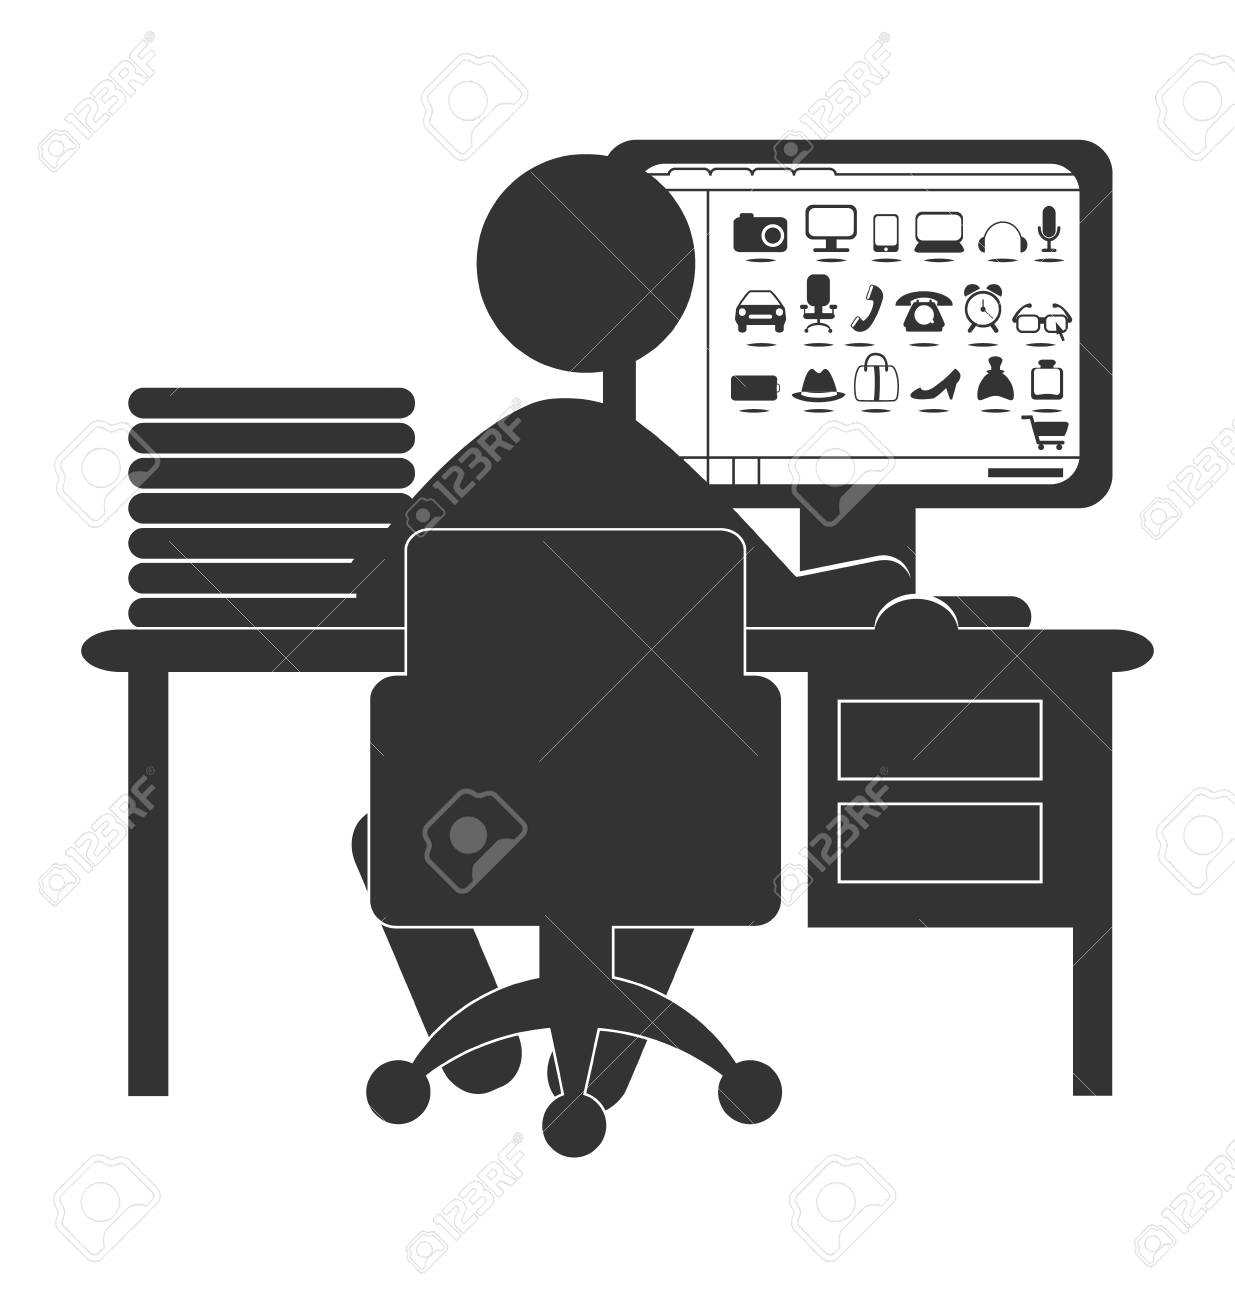 Computer Online Store Flat Computer Icon With Online Store Isolated On White Background